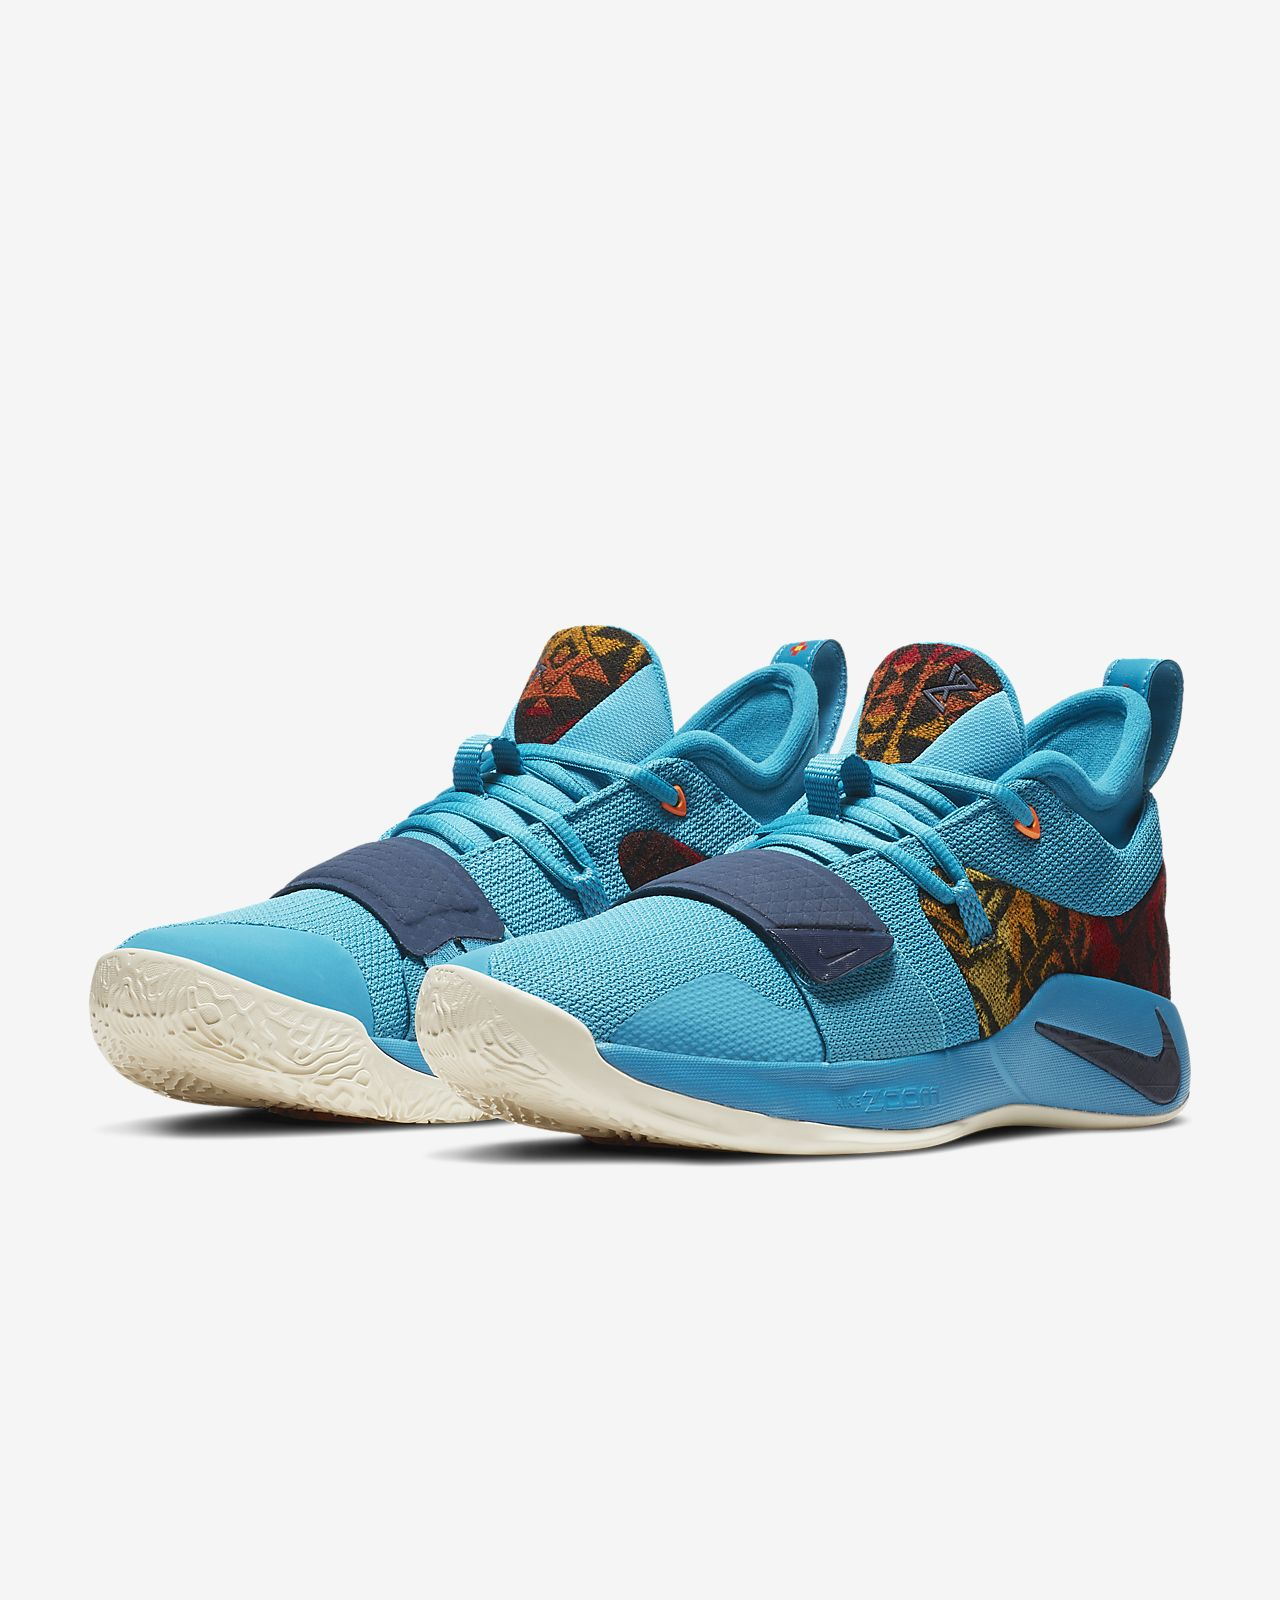 competitive price 90235 aa23e Low Resolution PG 2.5 Pendleton Schuh PG 2.5 Pendleton Schuh